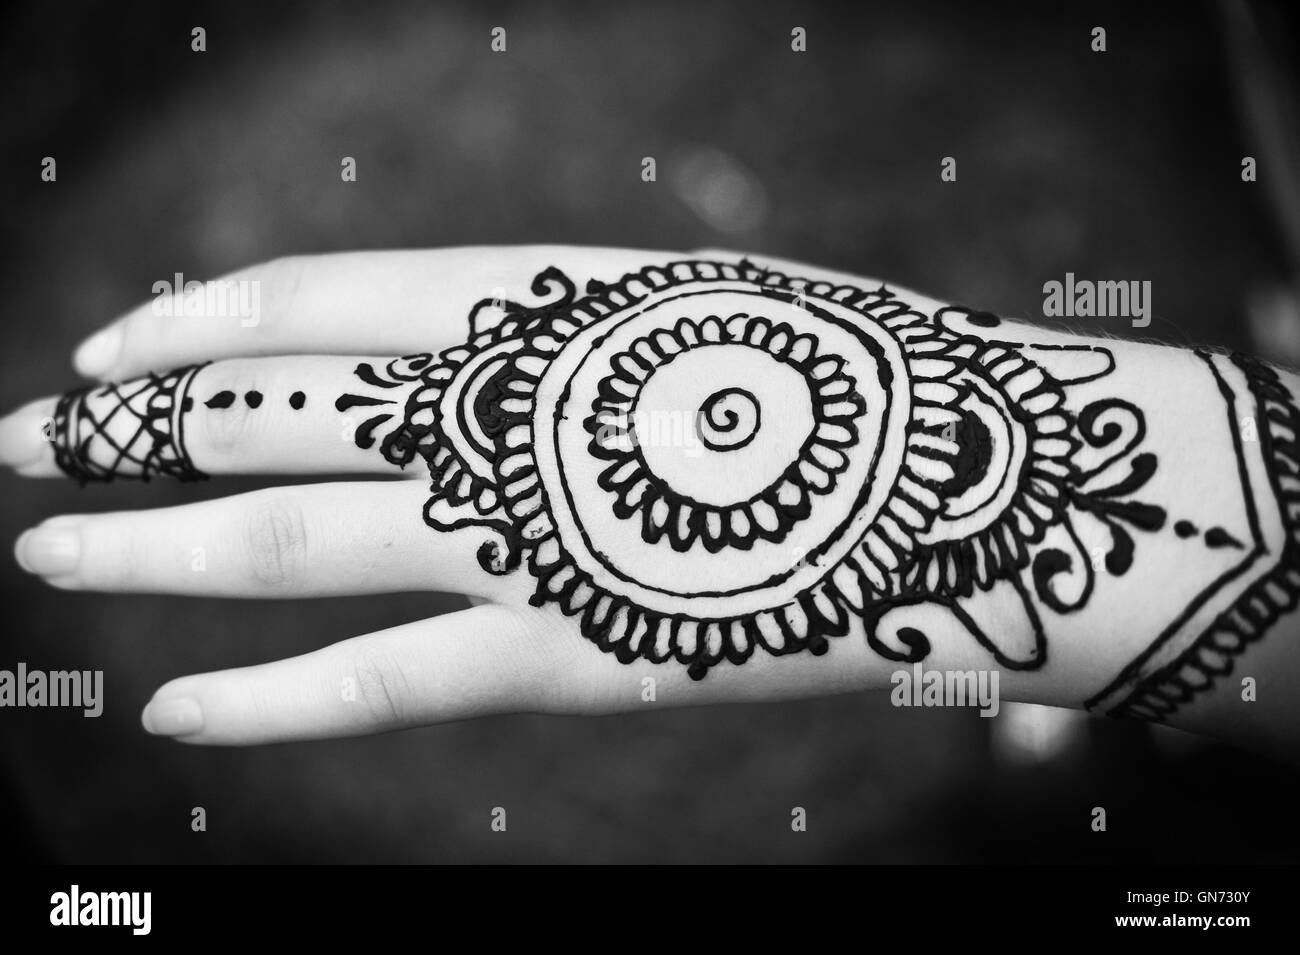 Henna Tattoo Black And White Stock Photos Images Alamy